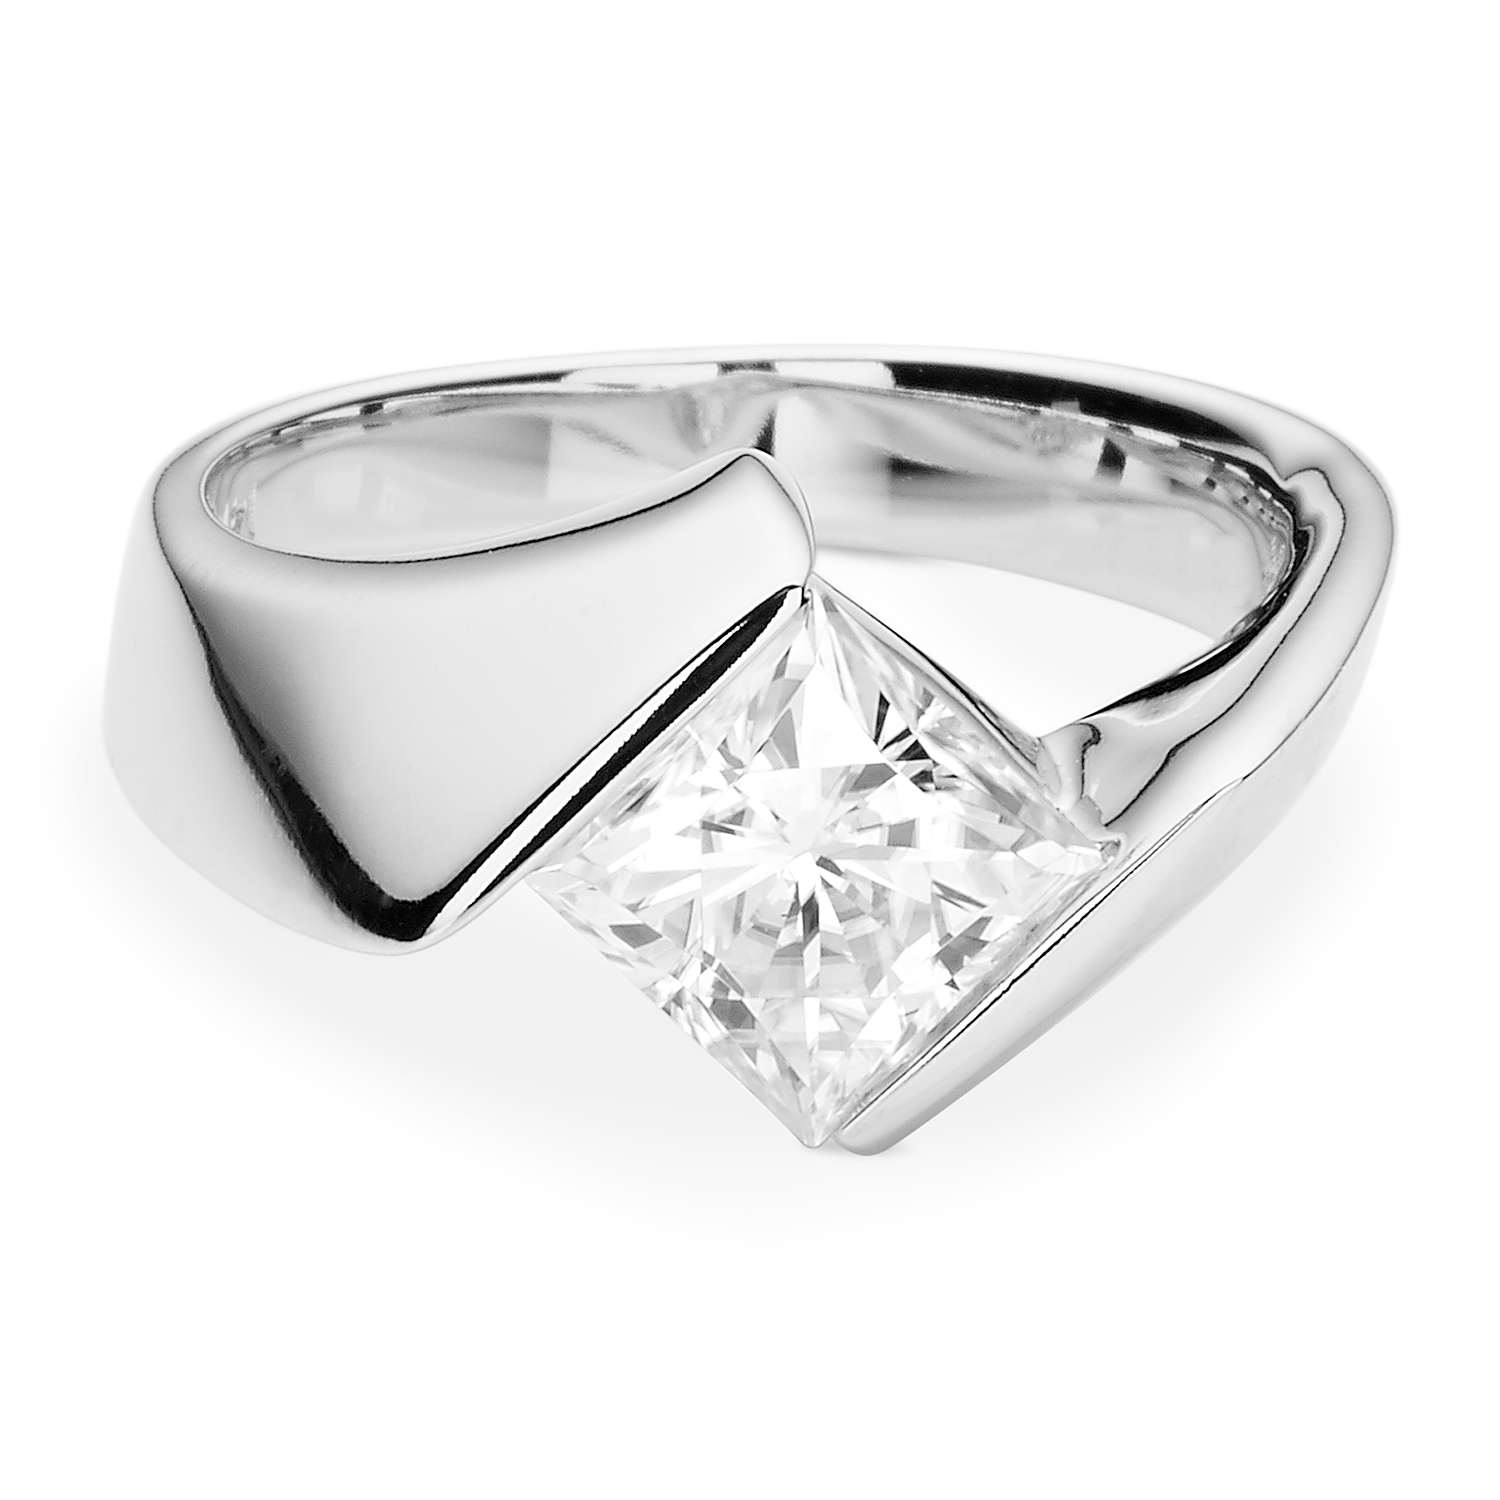 Details about  /1.50Ct Brilliant Round Cut White Moissanite Halo Engagement Ring 14K White Gold